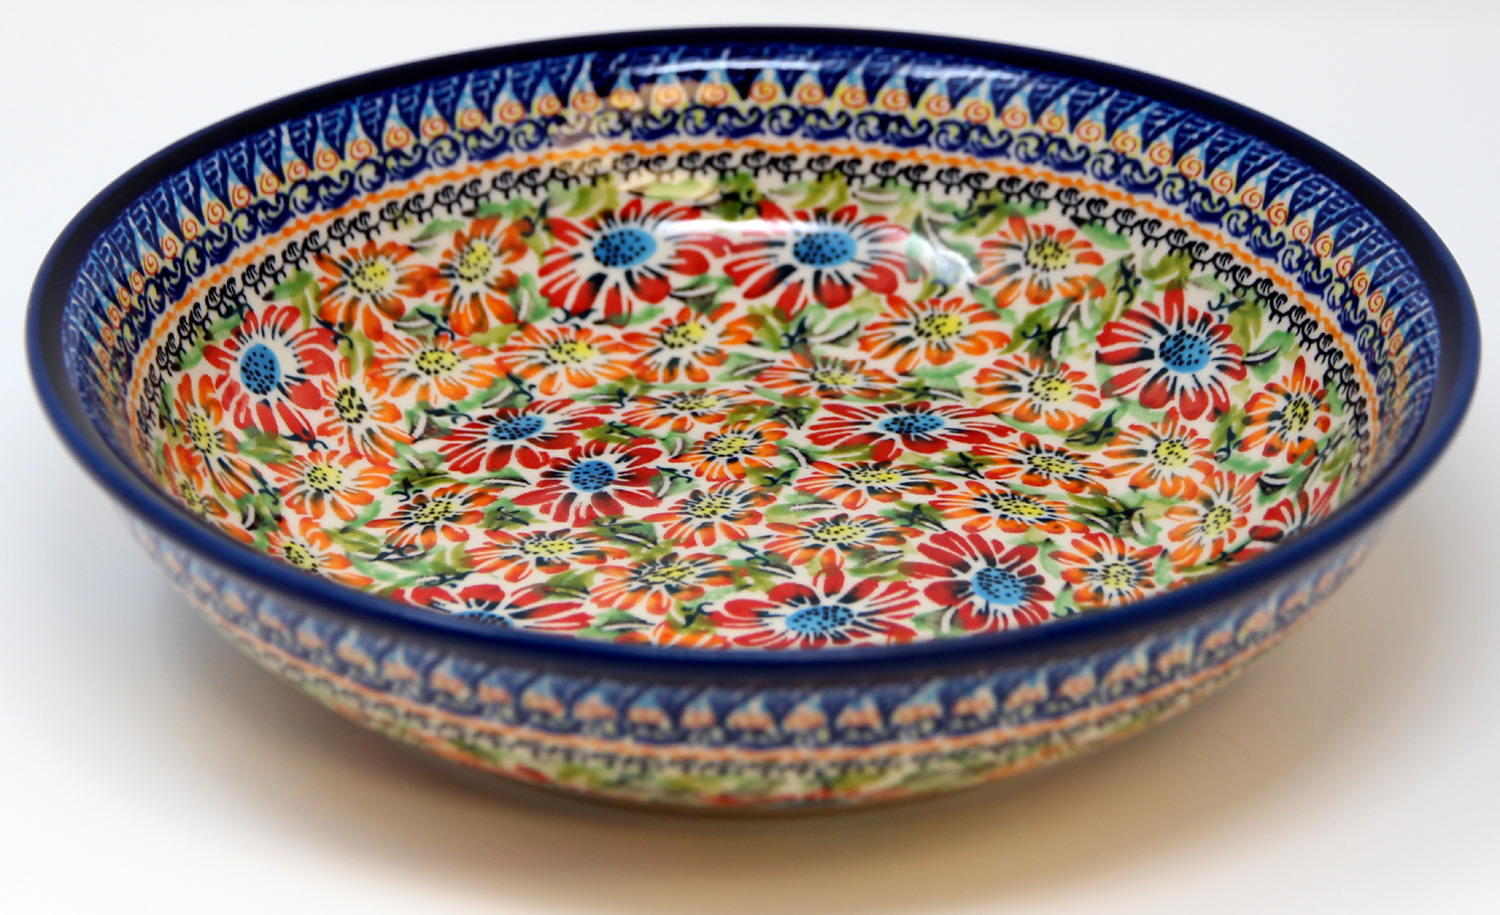 Polish Pottery Bowl 10 Inch, Unikat Signature Design 312 Art